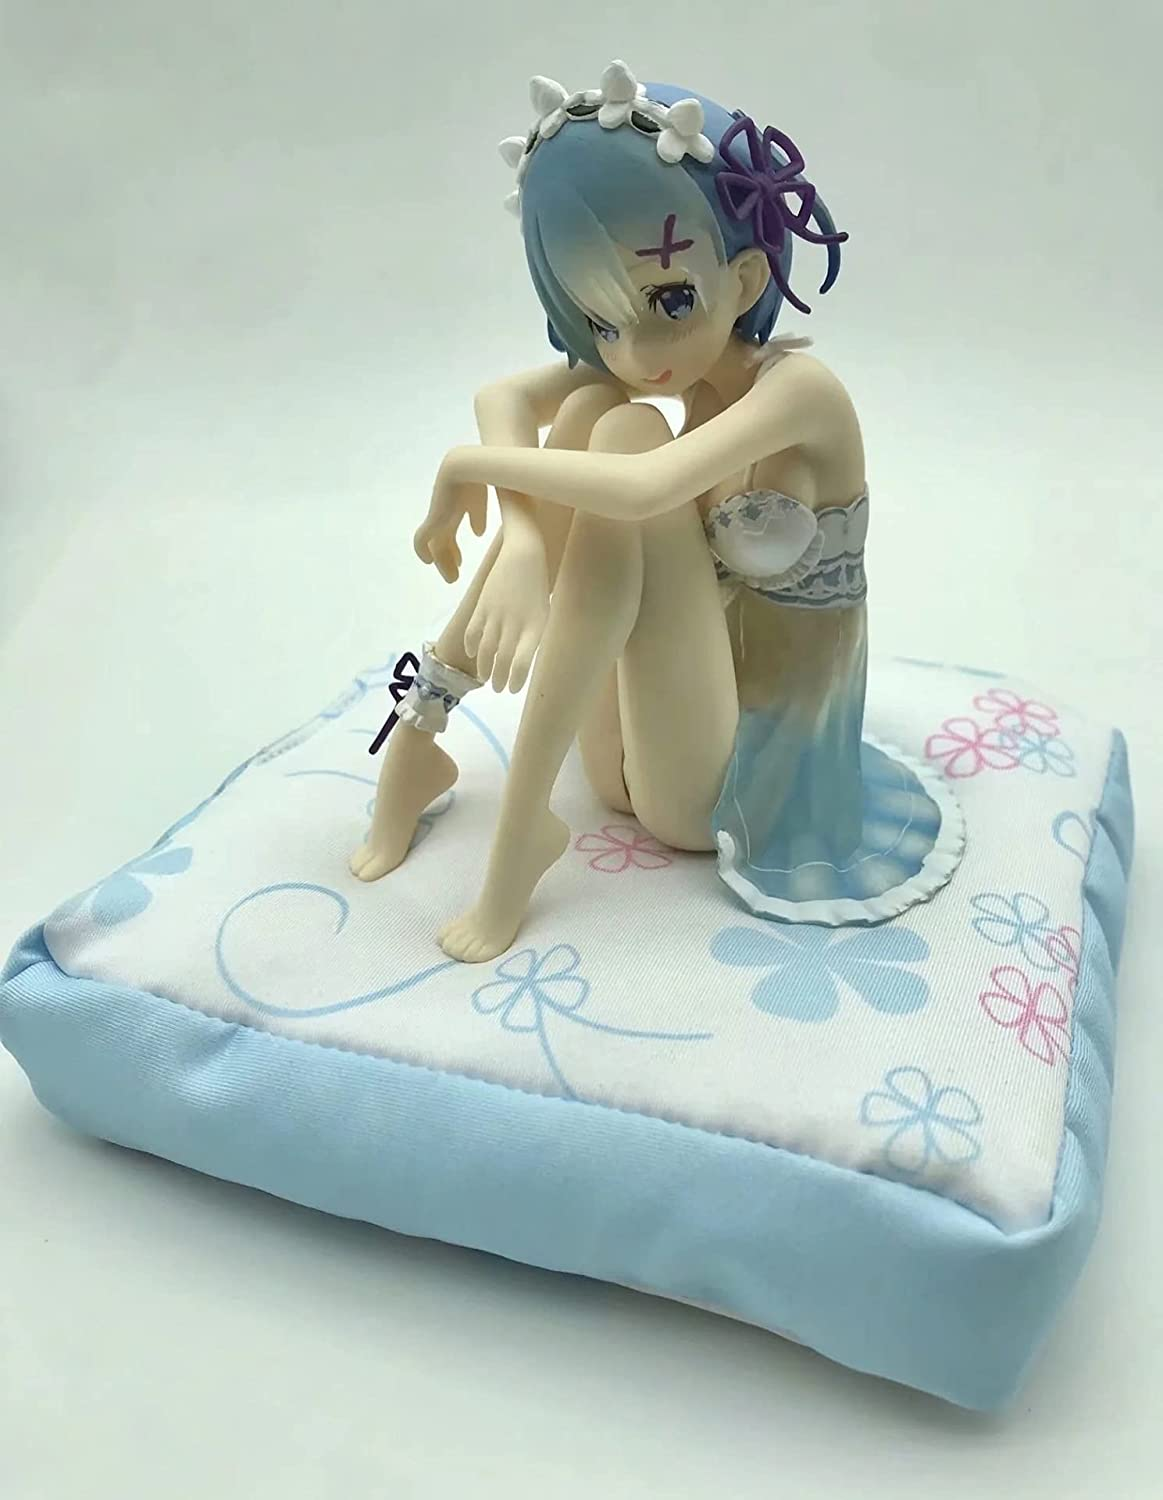 FWSJK Re:Life in a Different World PV Cheap sale High quality Zero:Rem Statue from Model